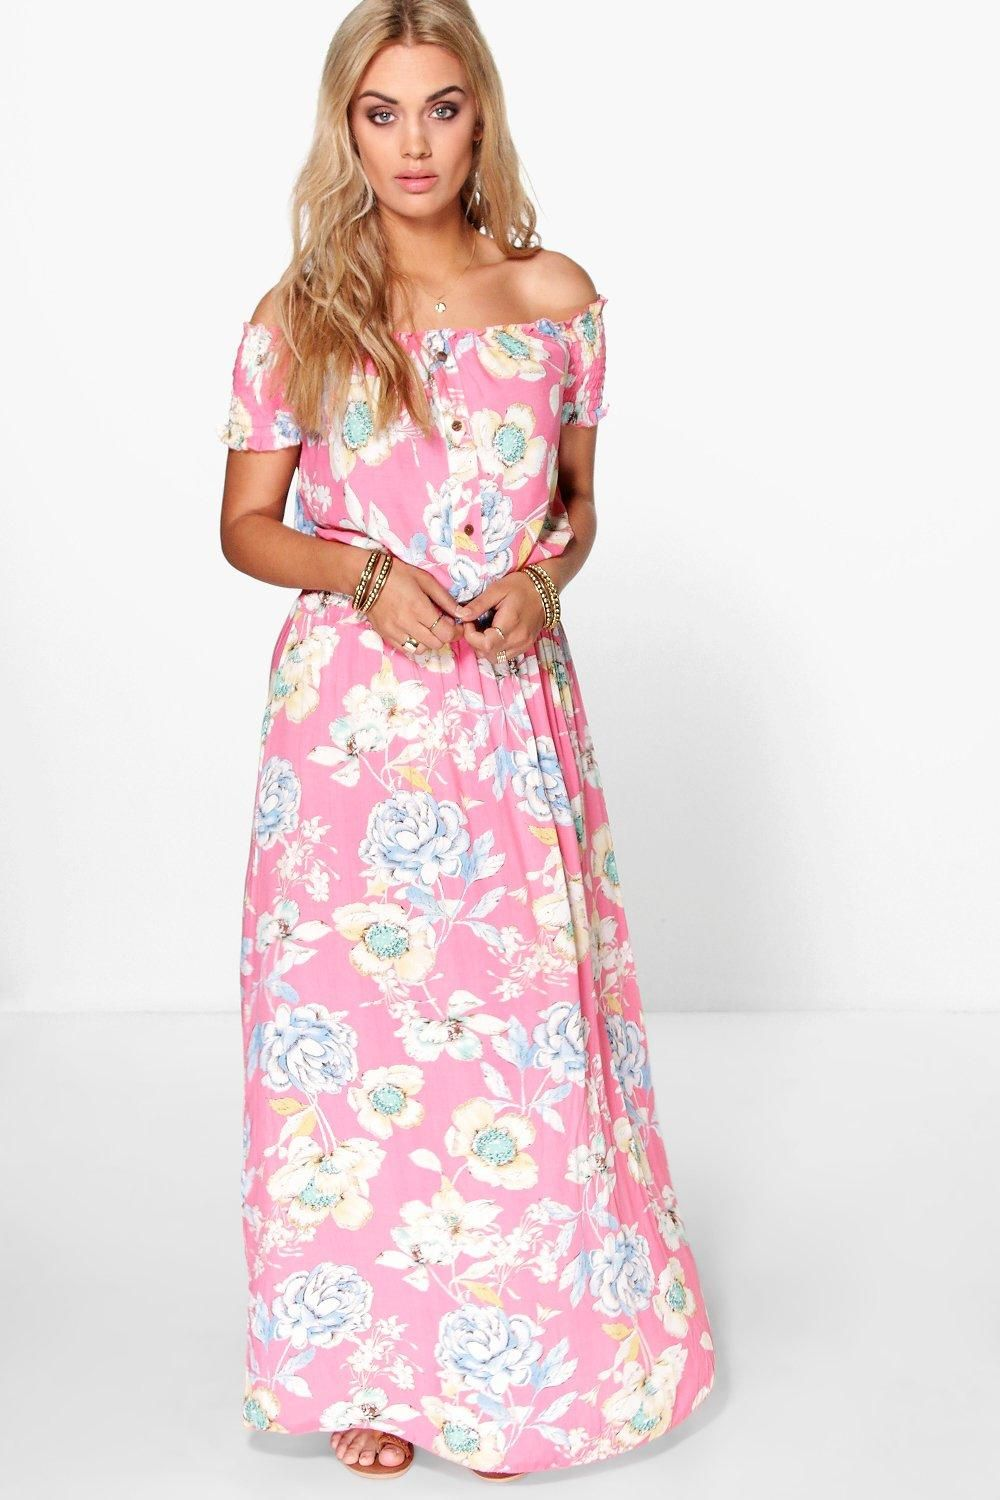 06646dae0a85 Off The Shoulder Floral Maxi Dress Uk - PostParc